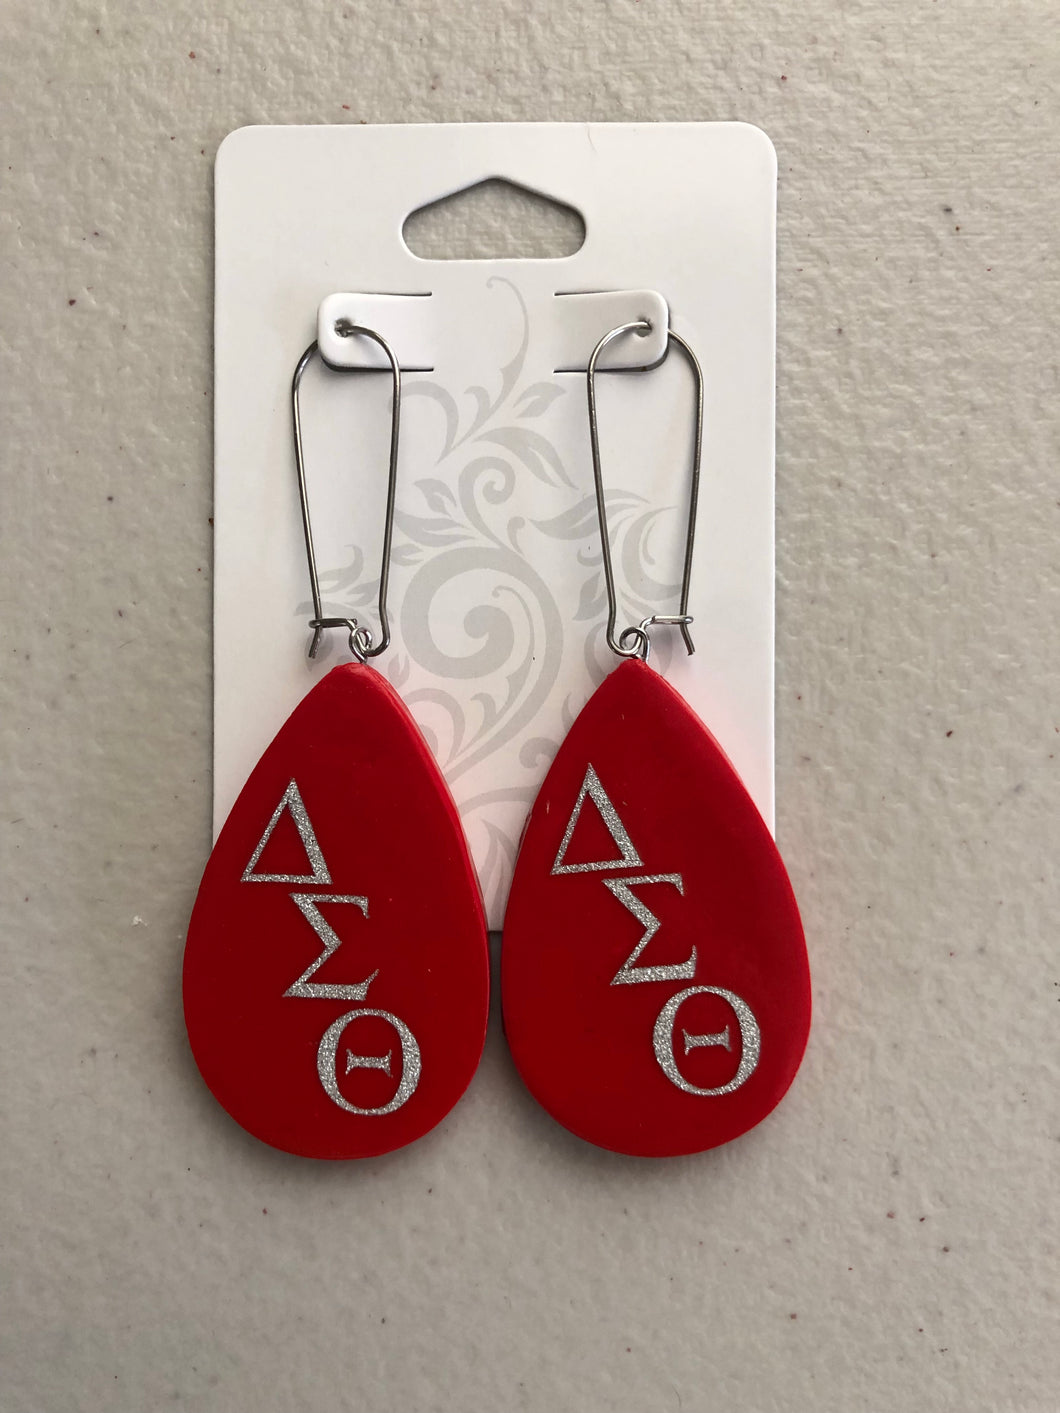 Sorority Earrings